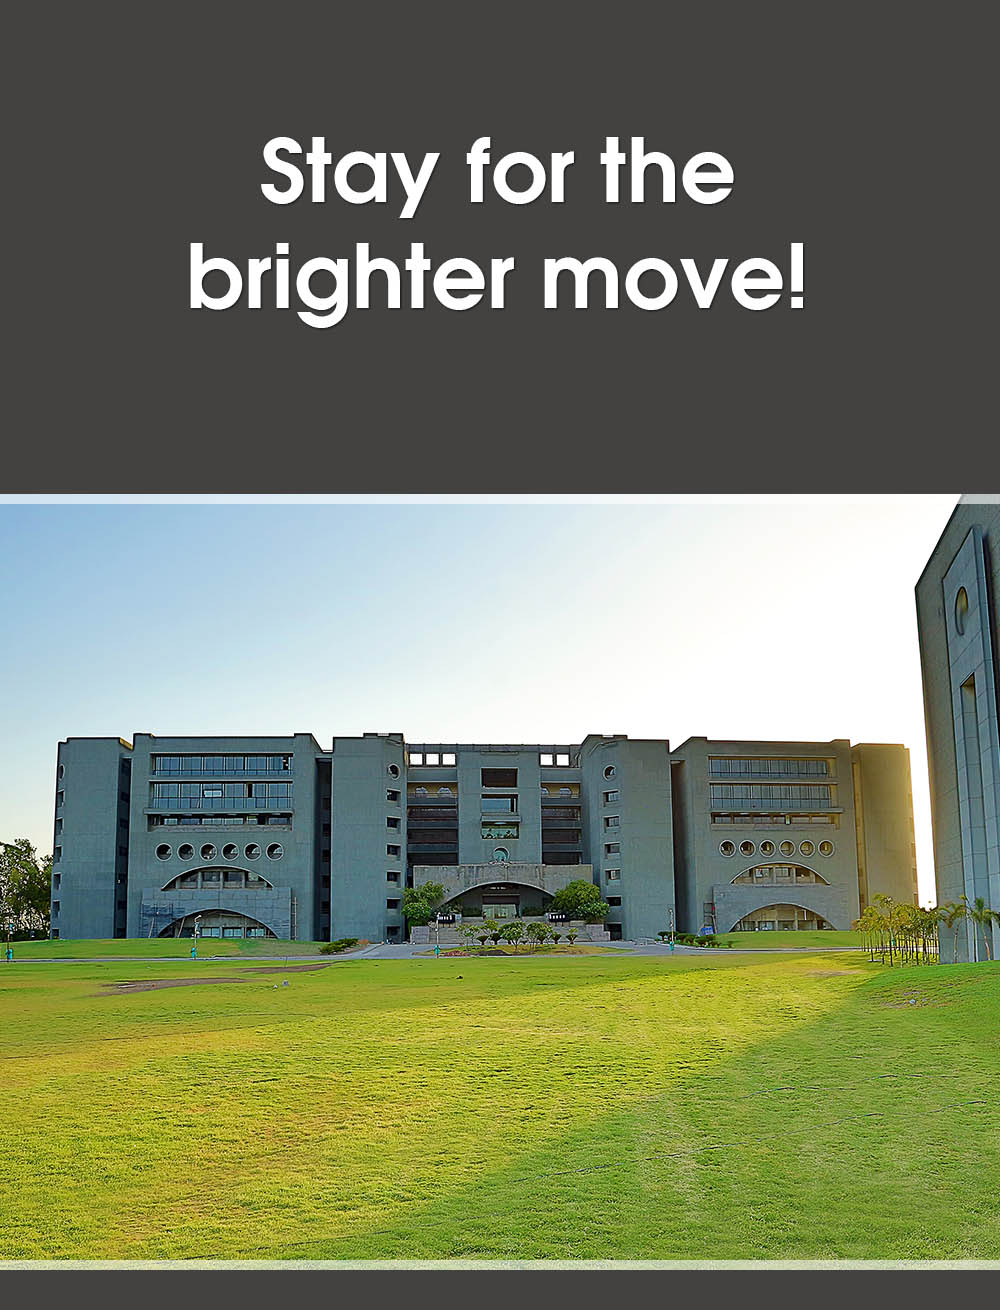 infrastructure of Marwadi university top university in Gujarat is full of greenery and learning